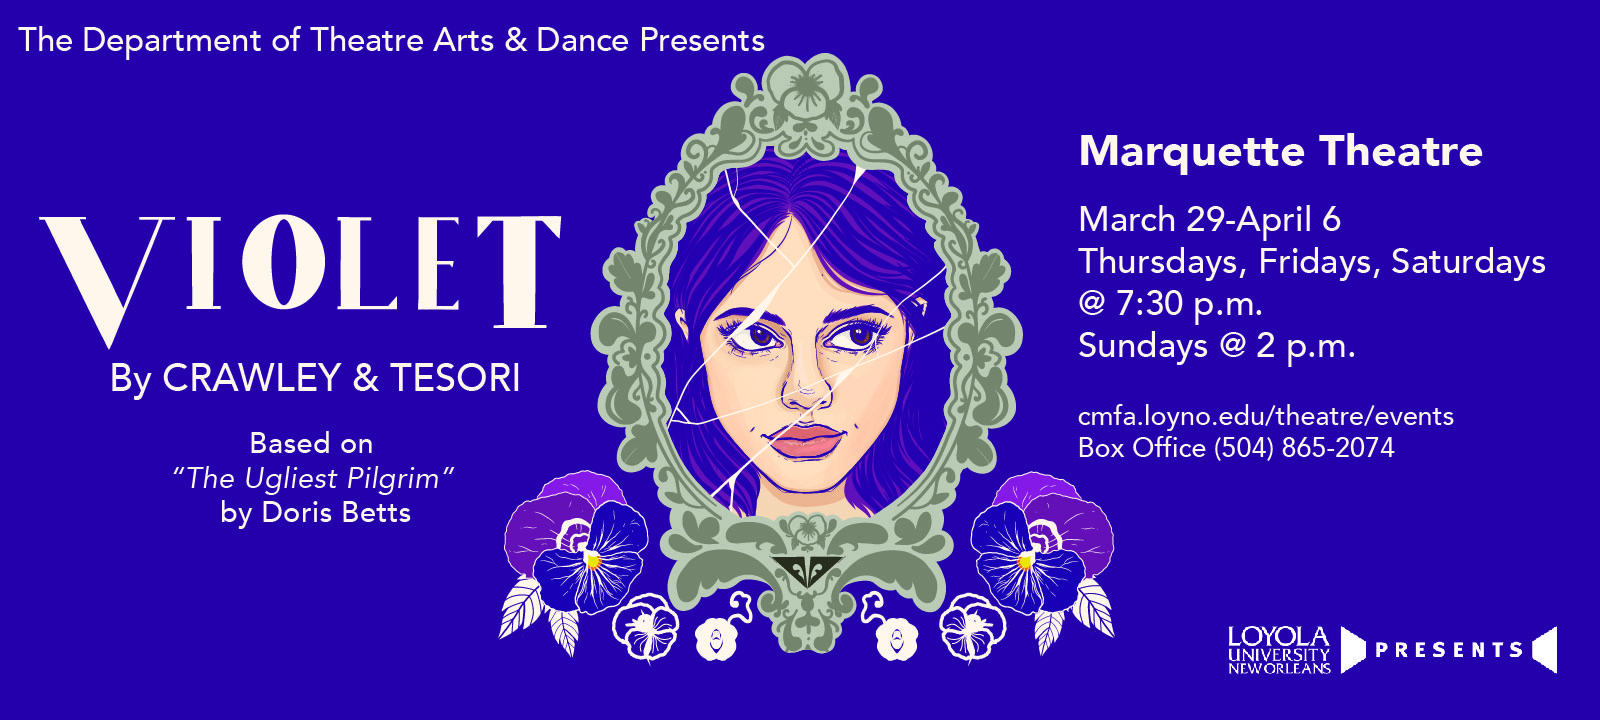 Violet by Crawley & Tesori opens March 29th. Get your tickets today!